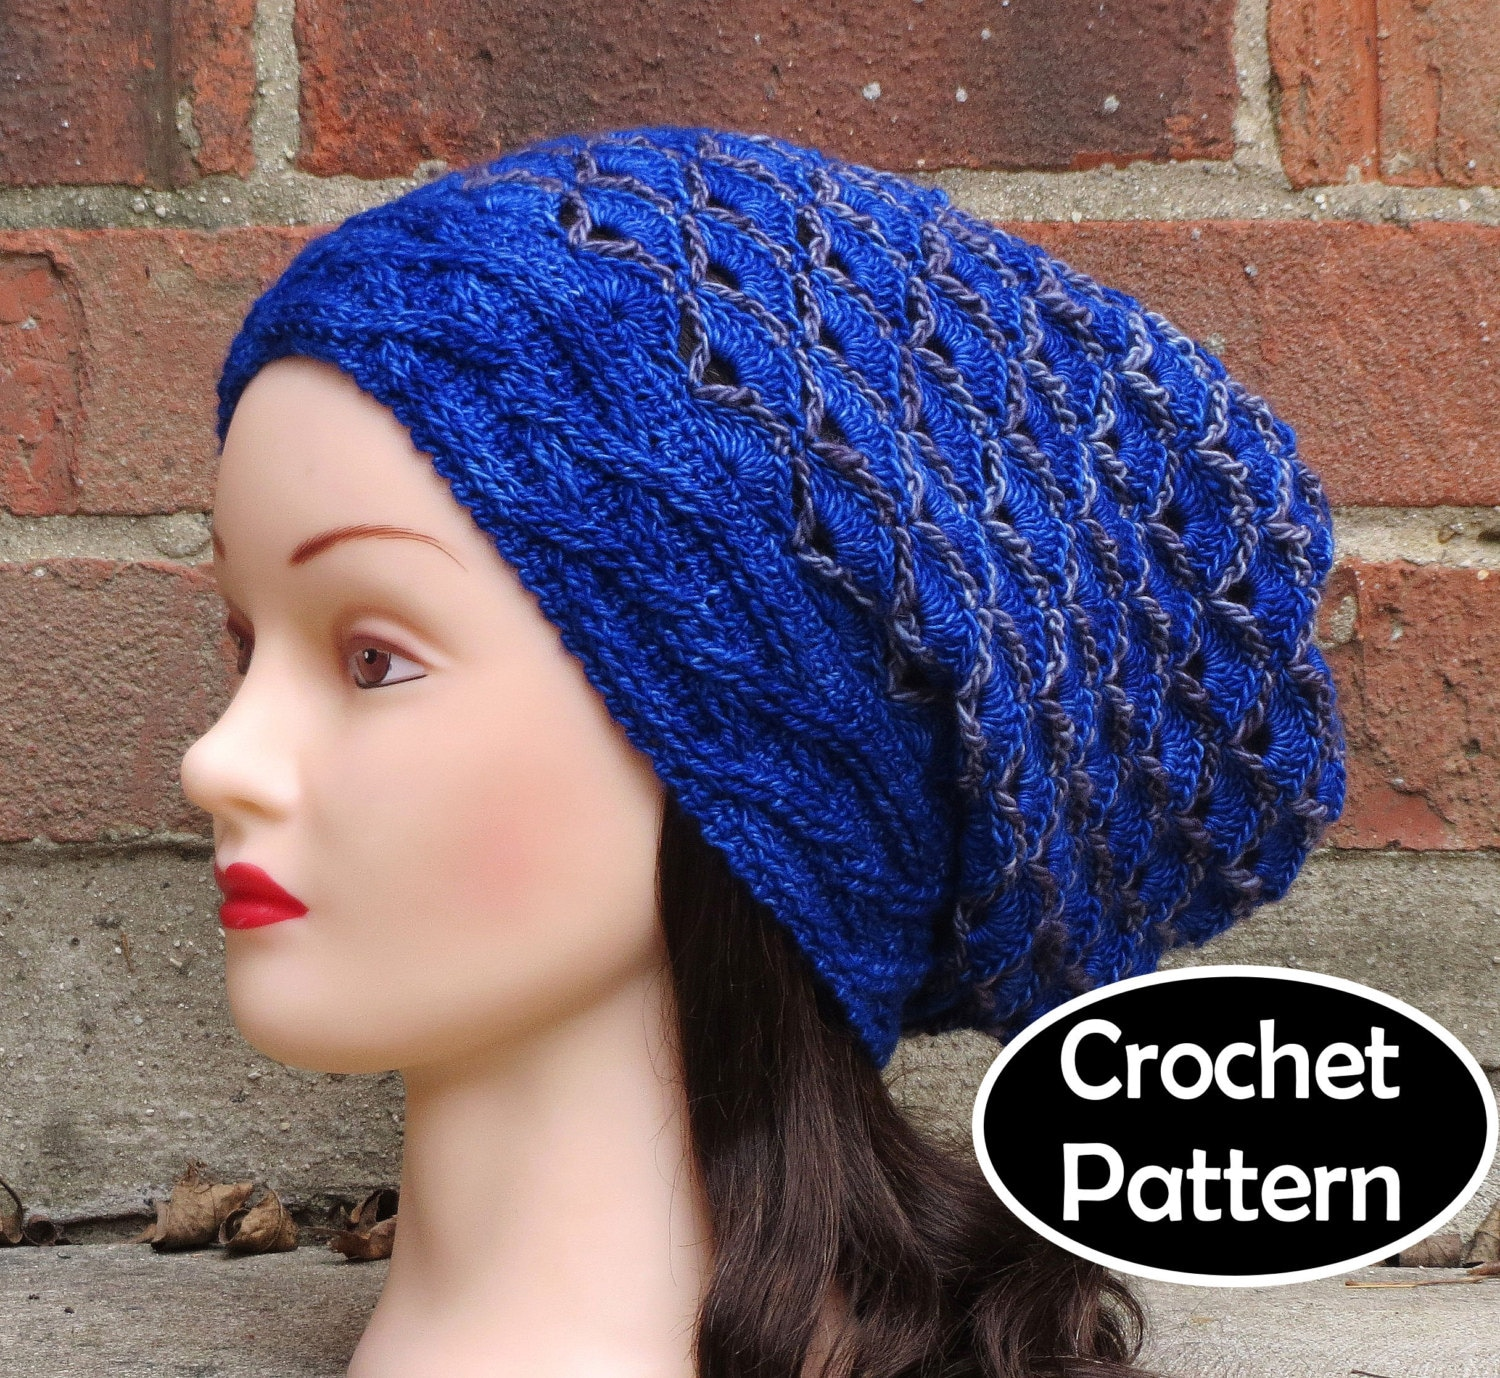 Crochet Hat Pattern Download : CROCHET HAT PATTERN Instant Pdf Download Mother of Dragons